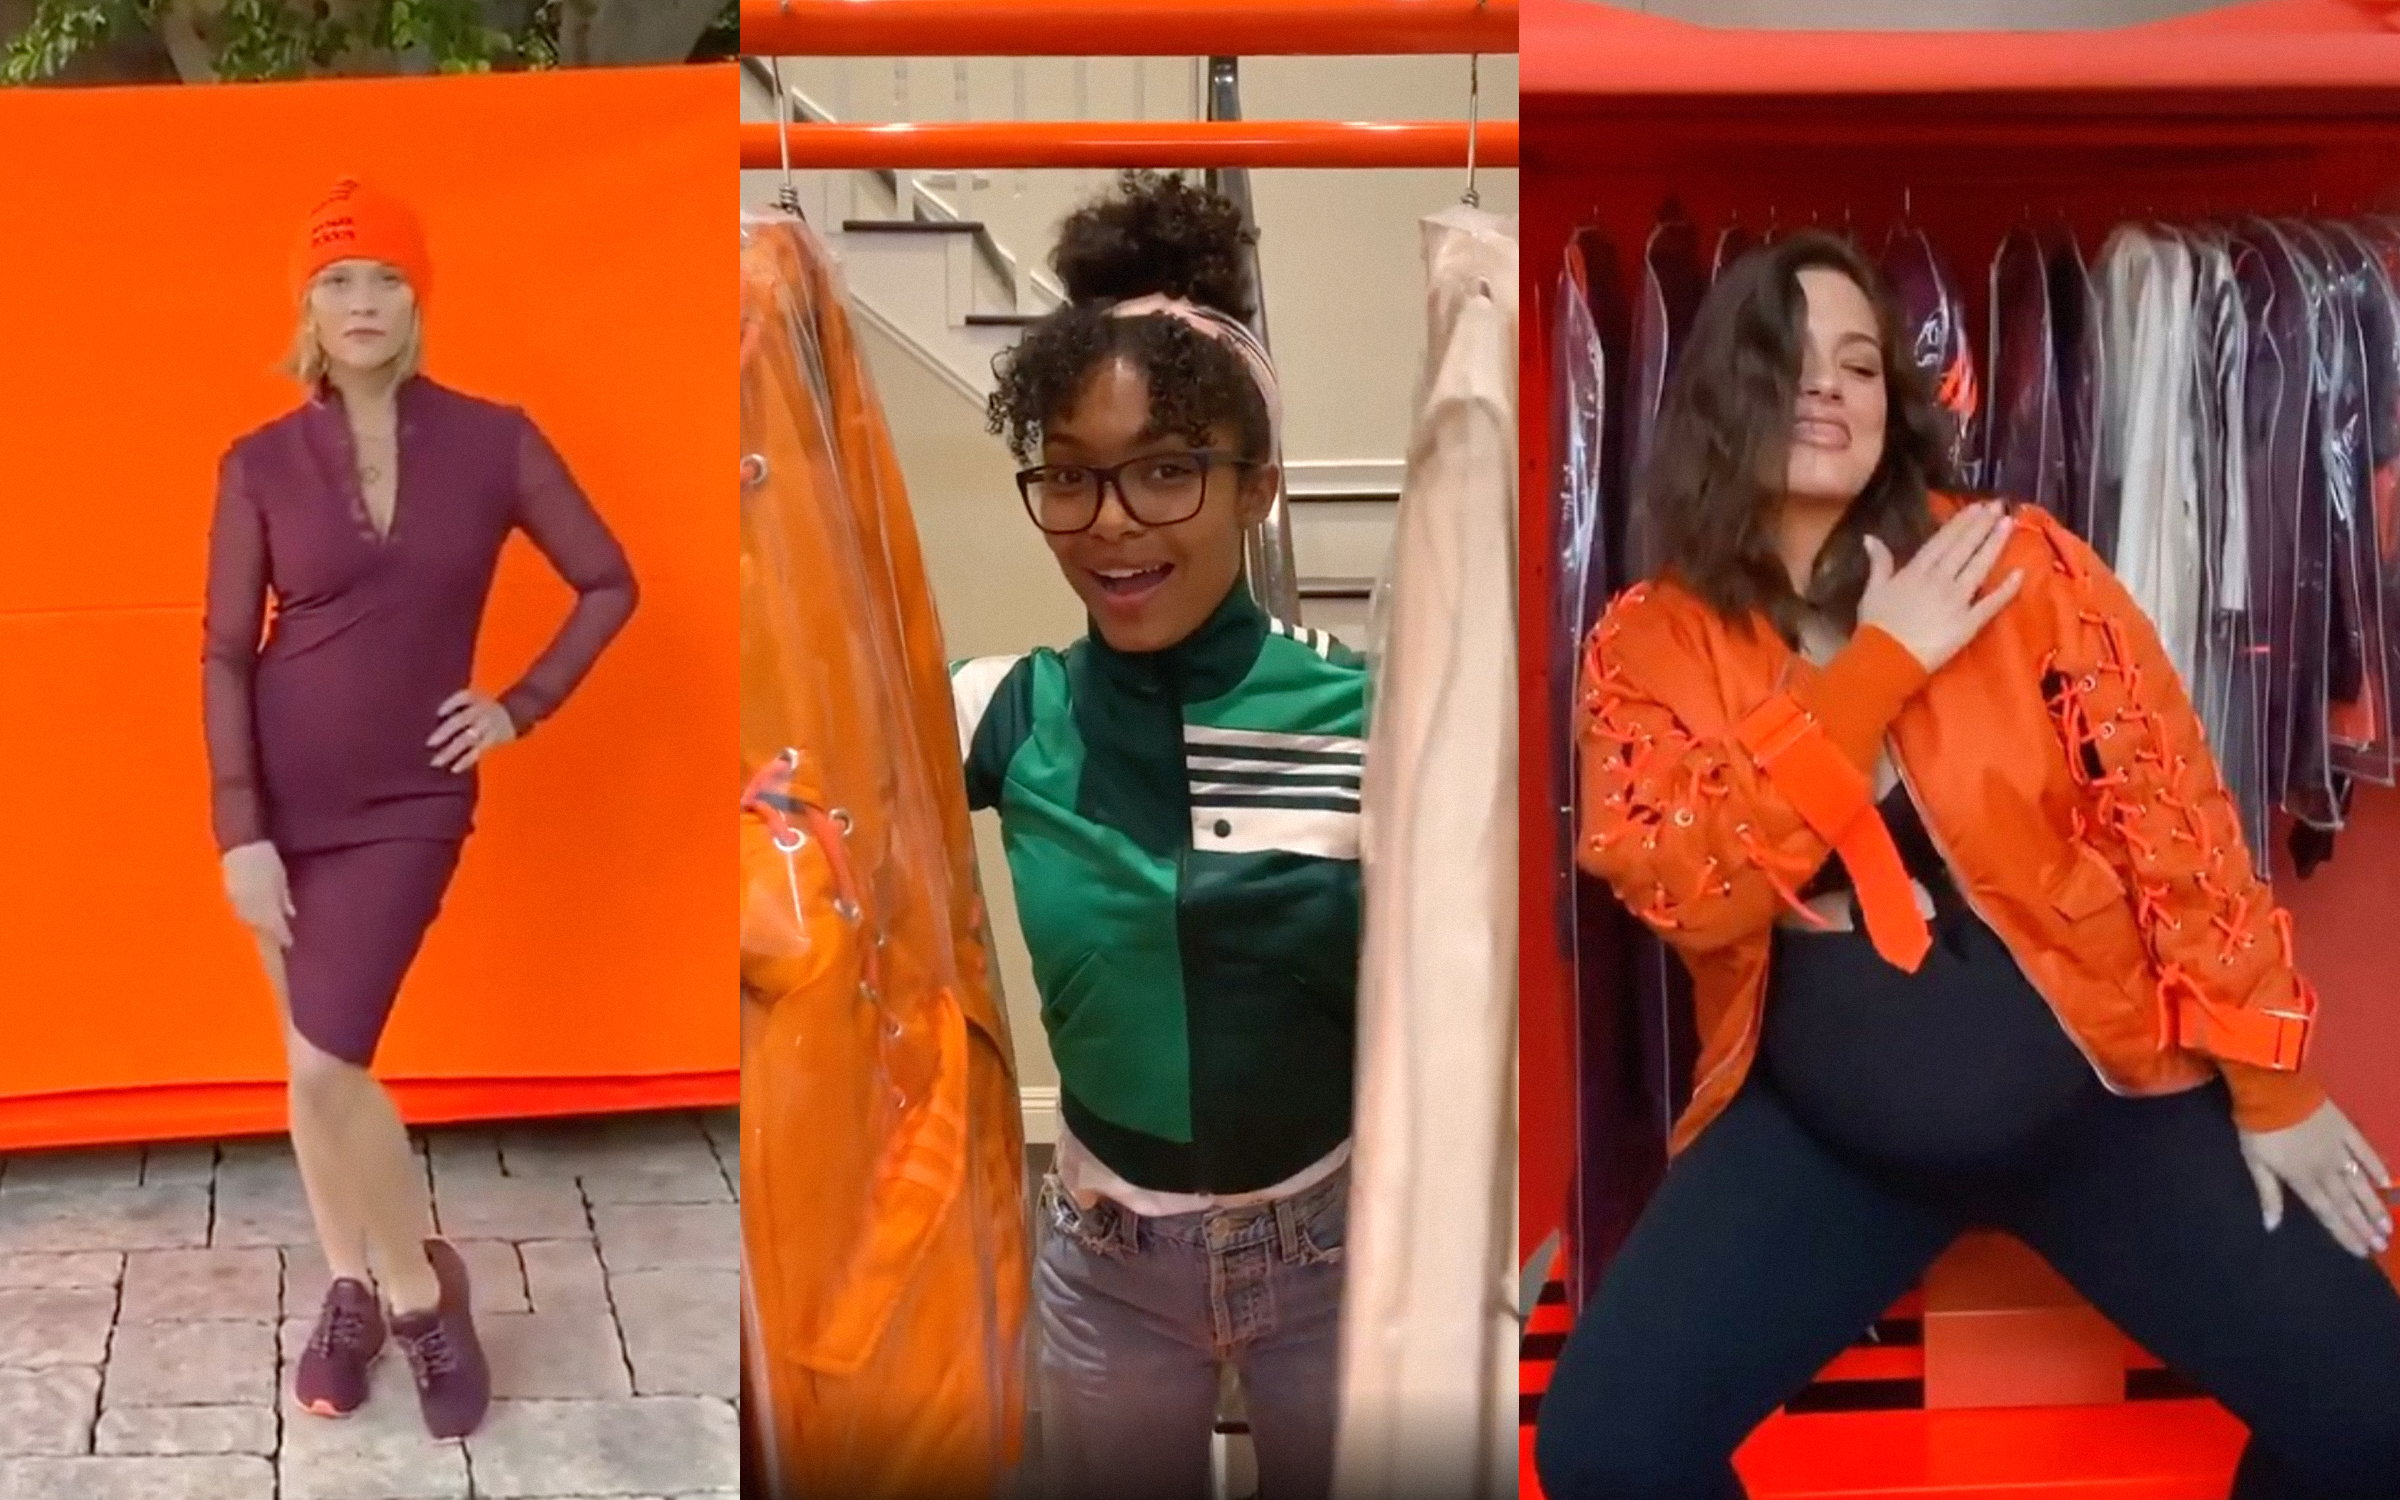 Reese Witherspoon, Yara Shahidi, and Ashley Graham with pieces from the Ivy Park x Adidas collection